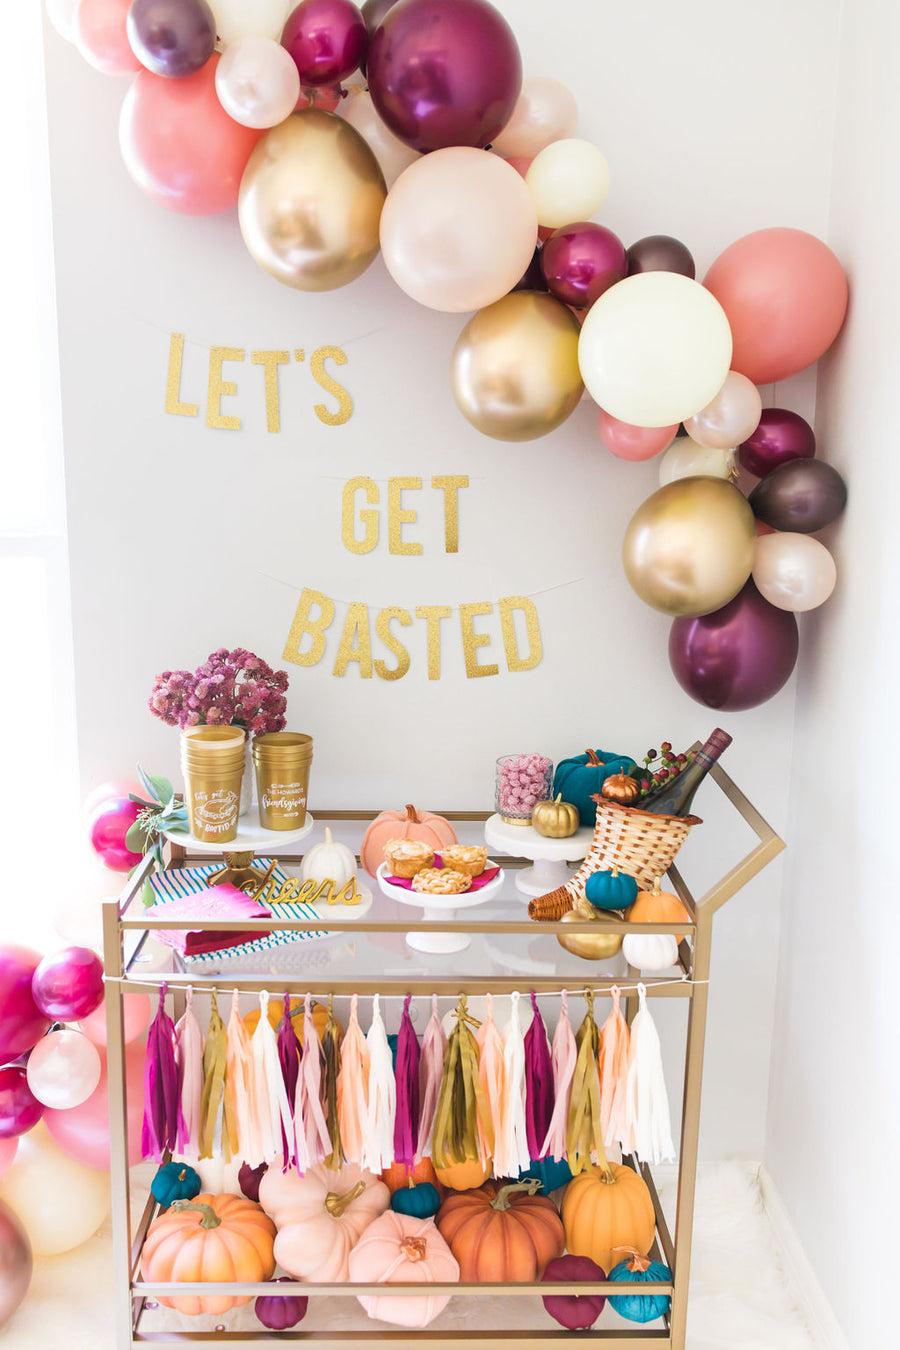 Let's Get Basted Friendsgiving Banner